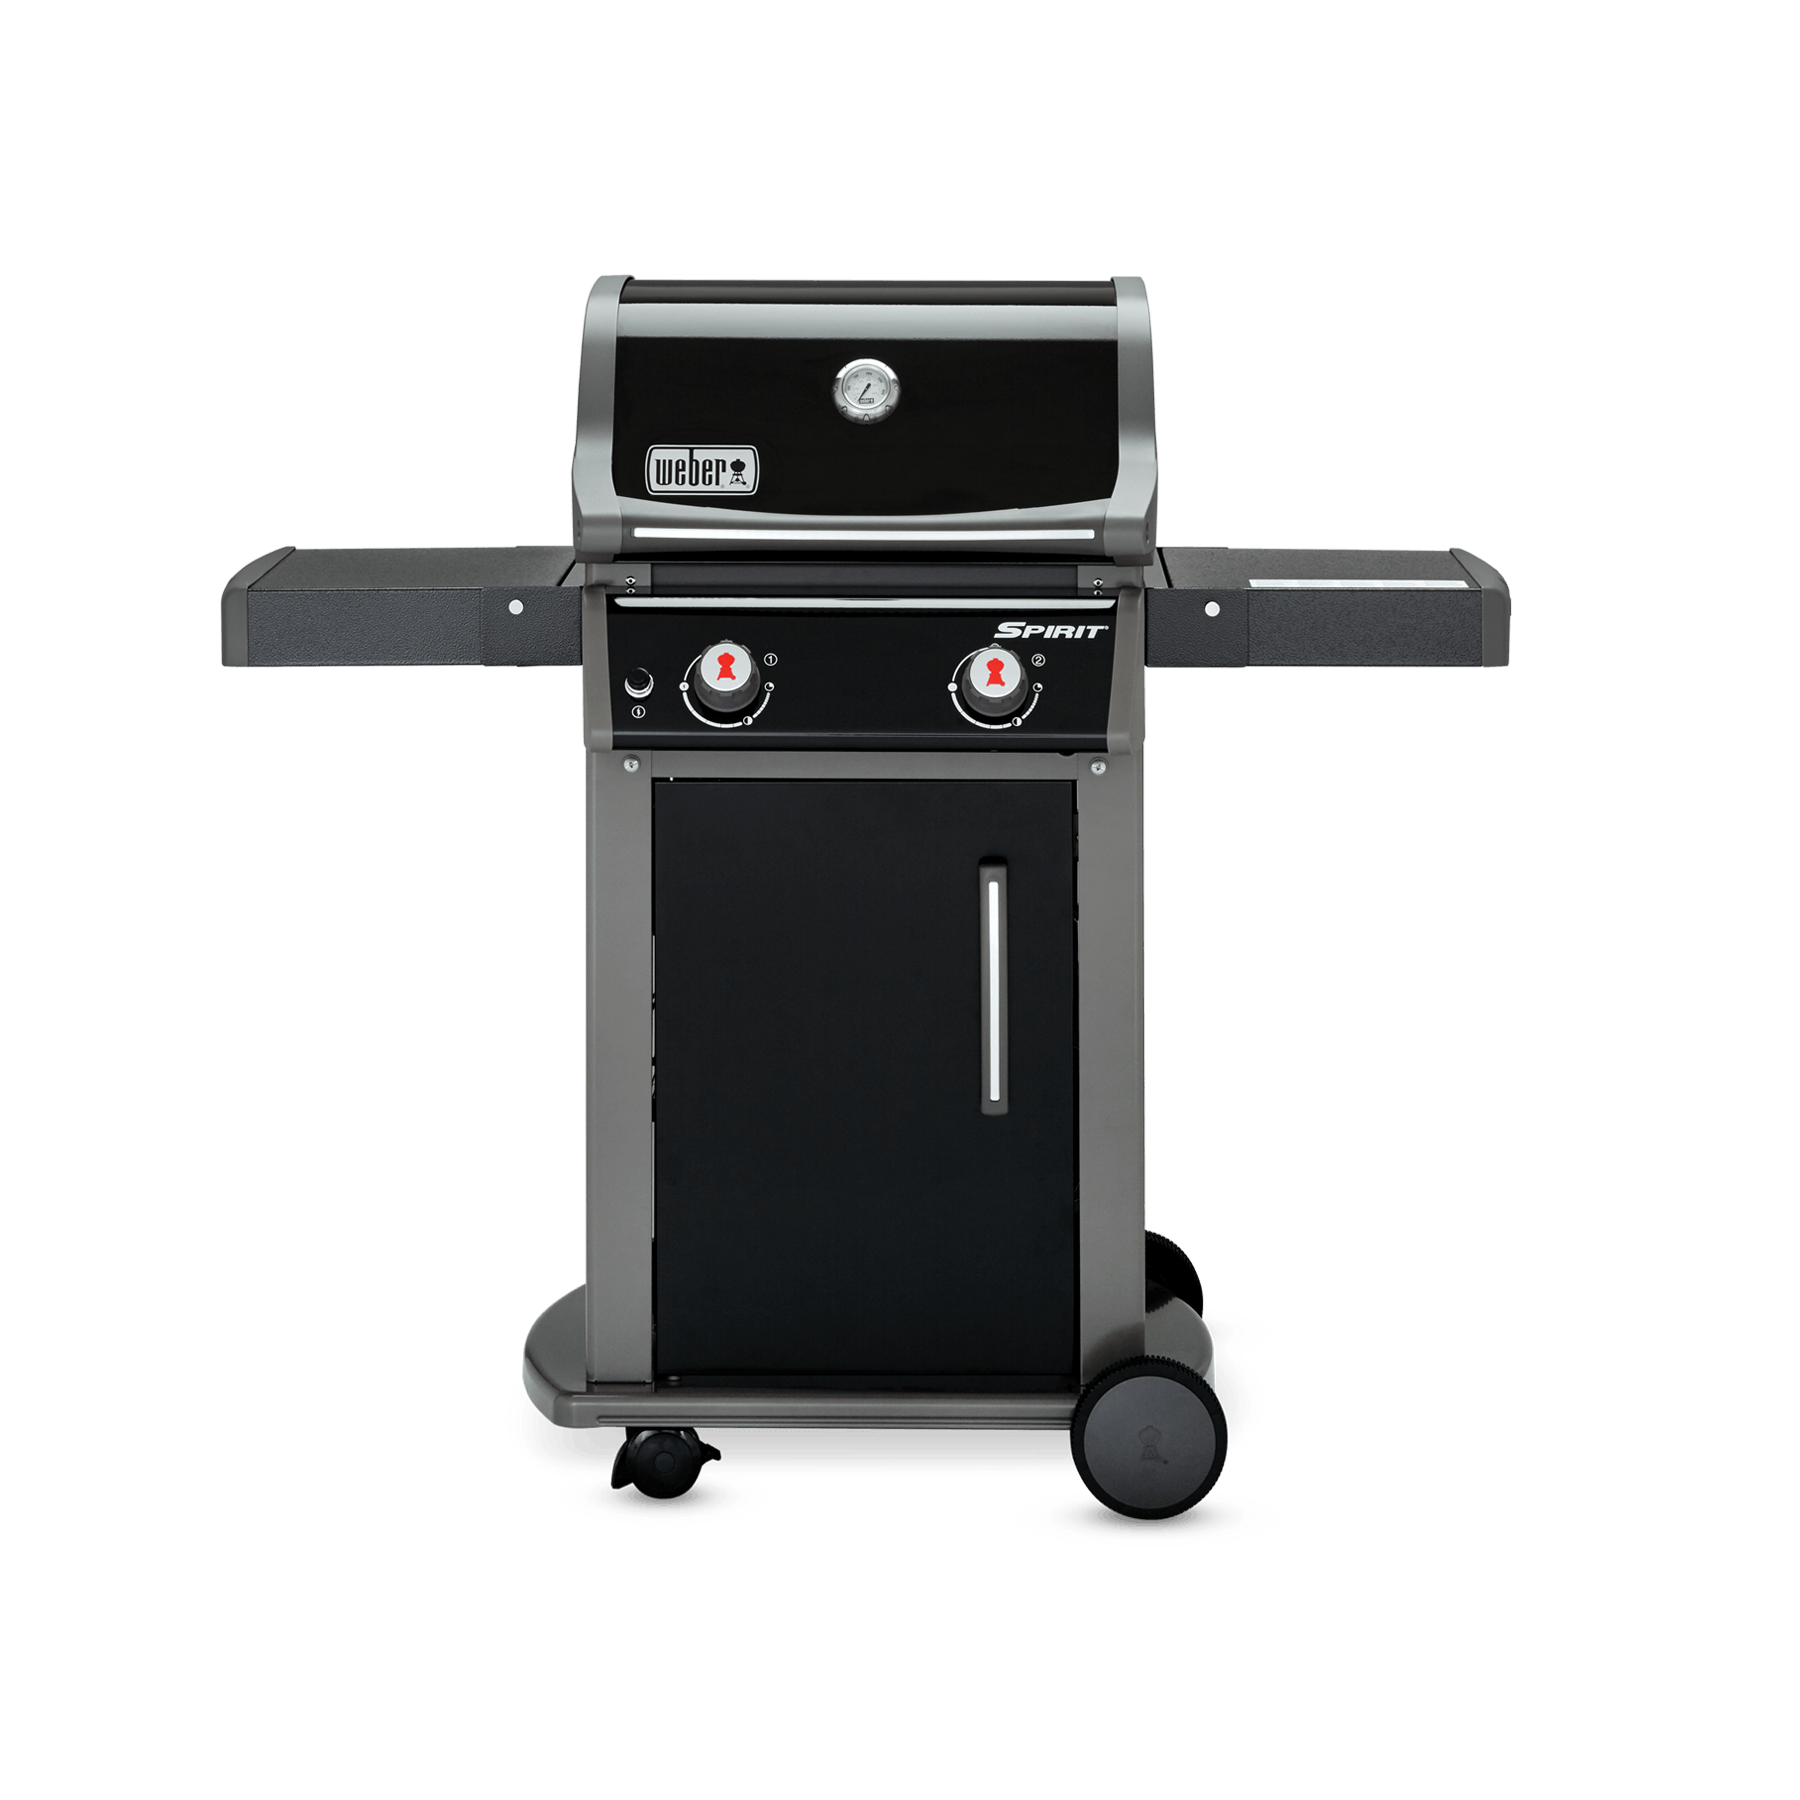 weber gasgrills die spirit modelle weber grill original. Black Bedroom Furniture Sets. Home Design Ideas